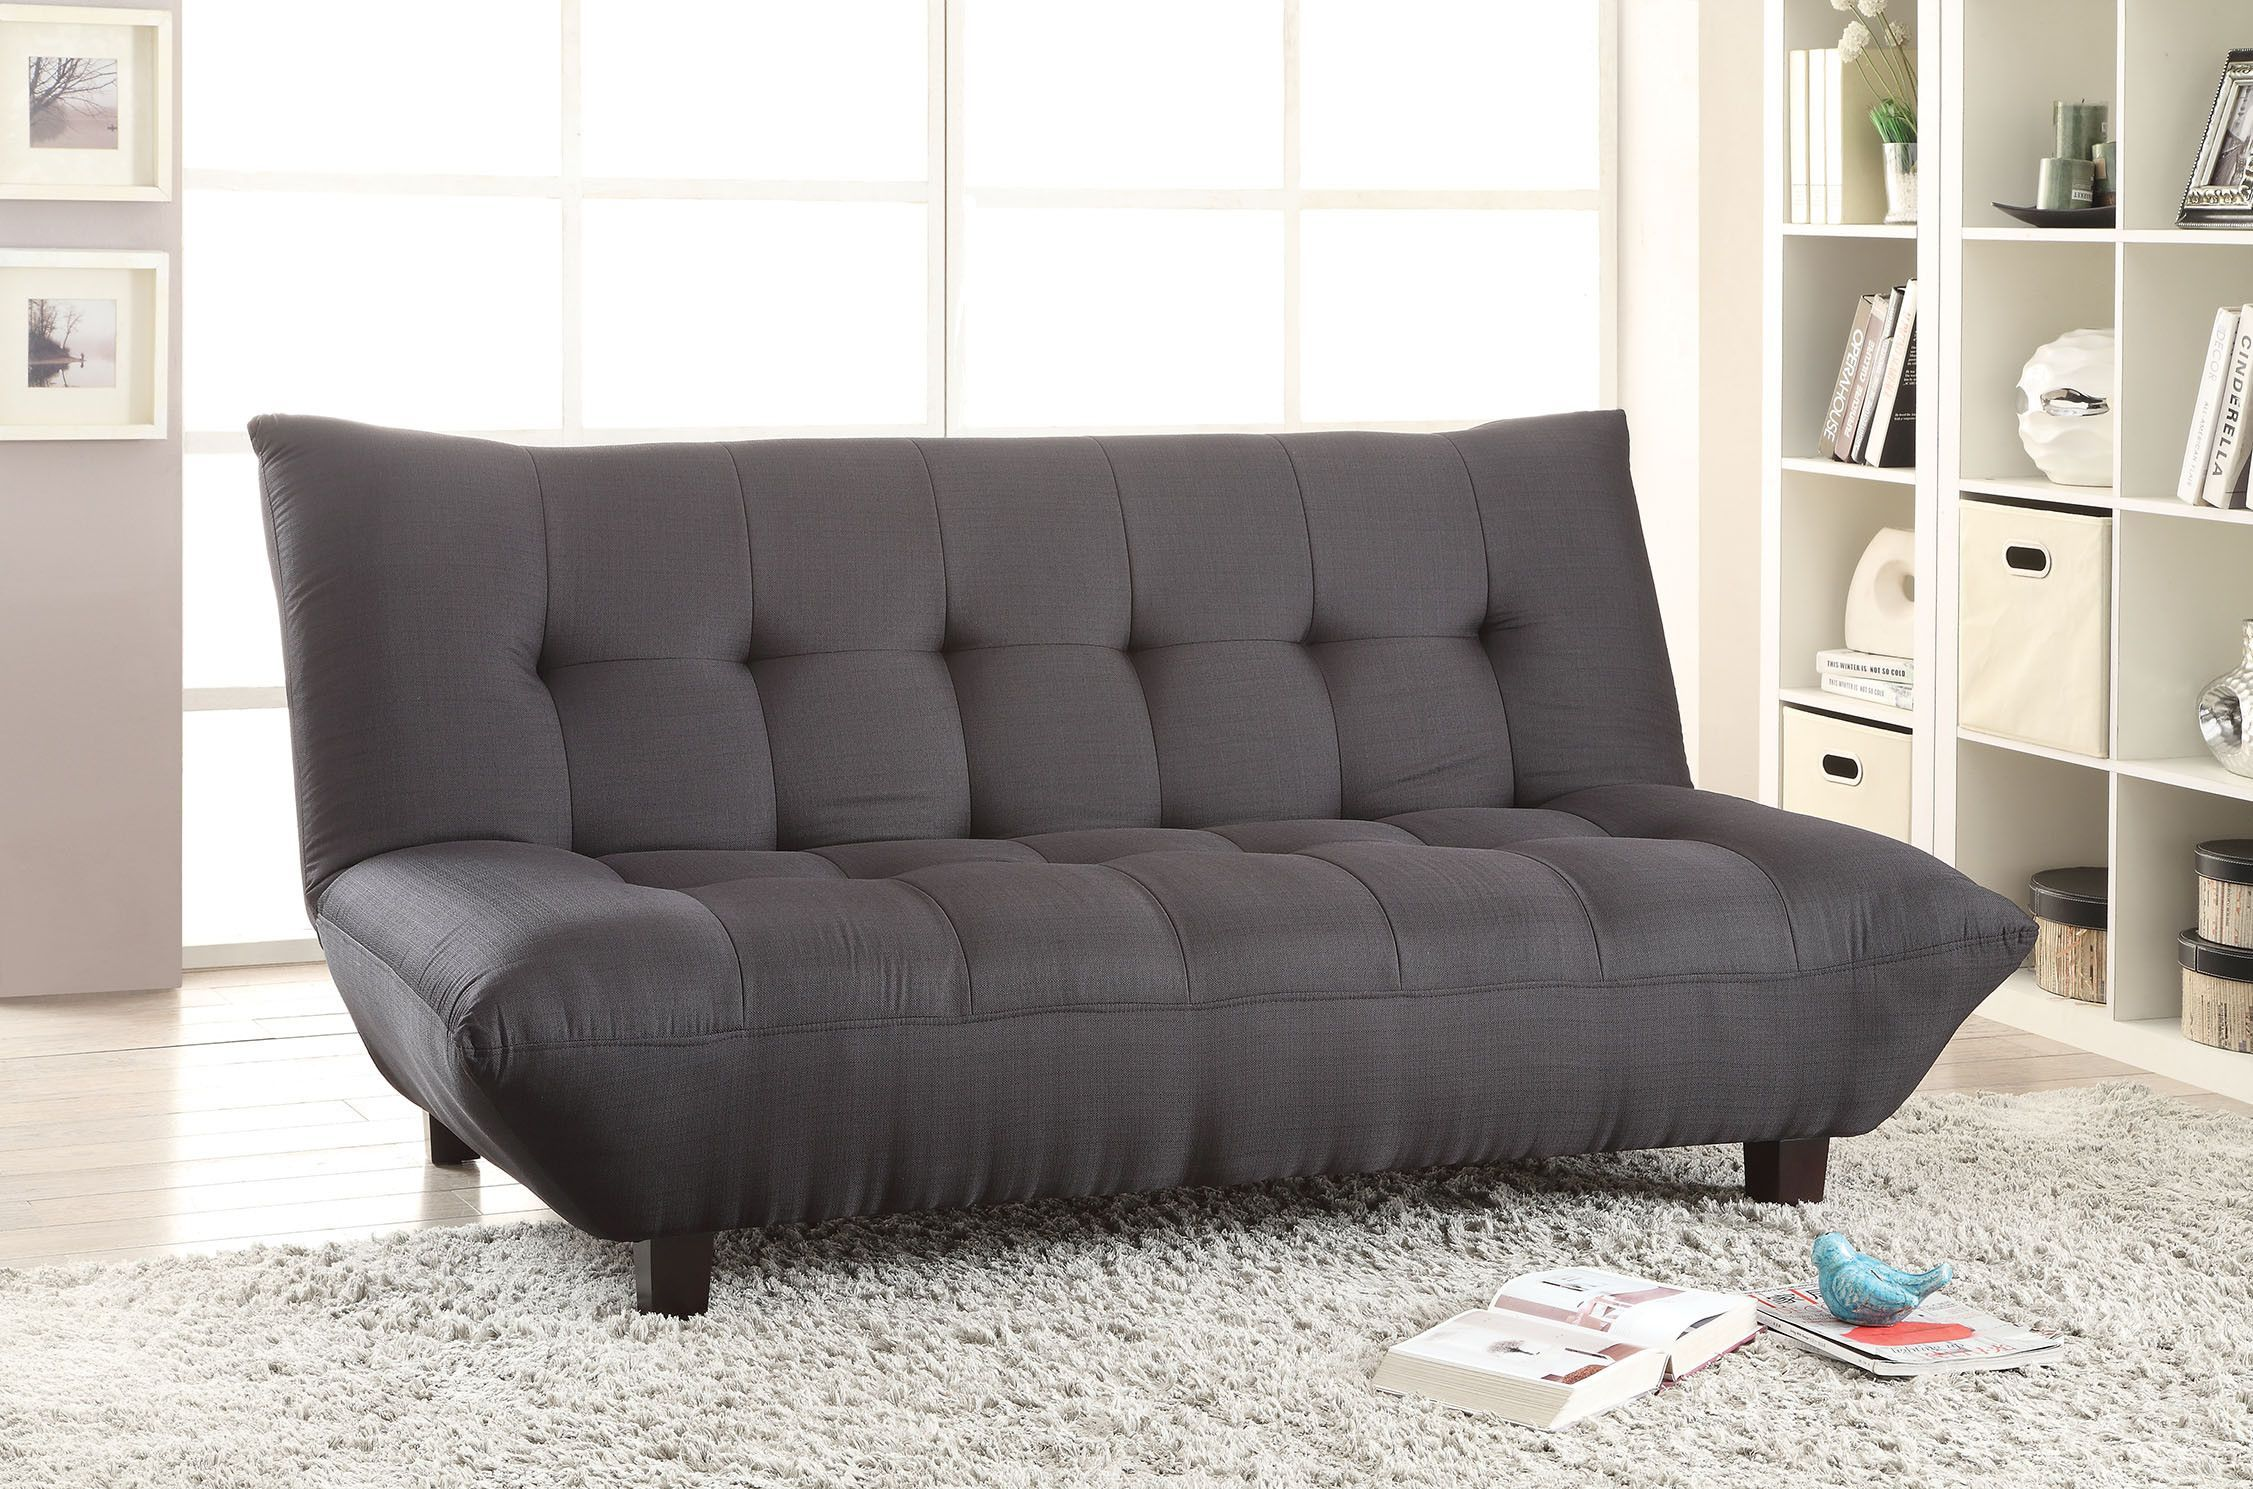 Acme Baines Adjustable Sofa Black Linen at hhoutlets for only